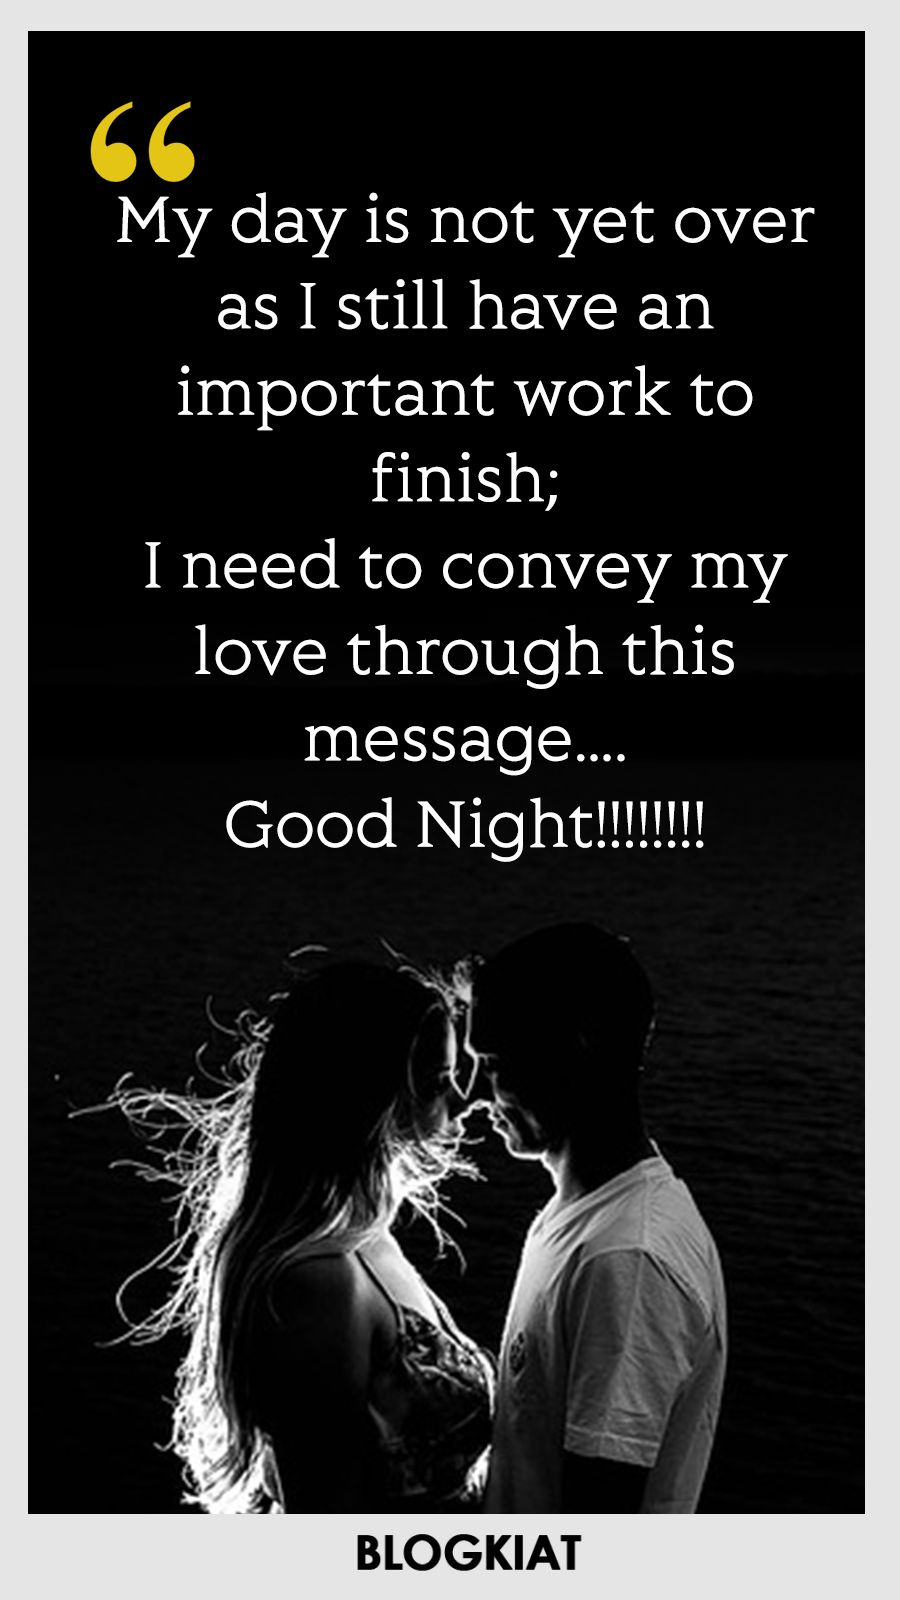 Goodnight My Love Quotes Stunning 50 Good Night Love Quotes Sayings Messages For Himher